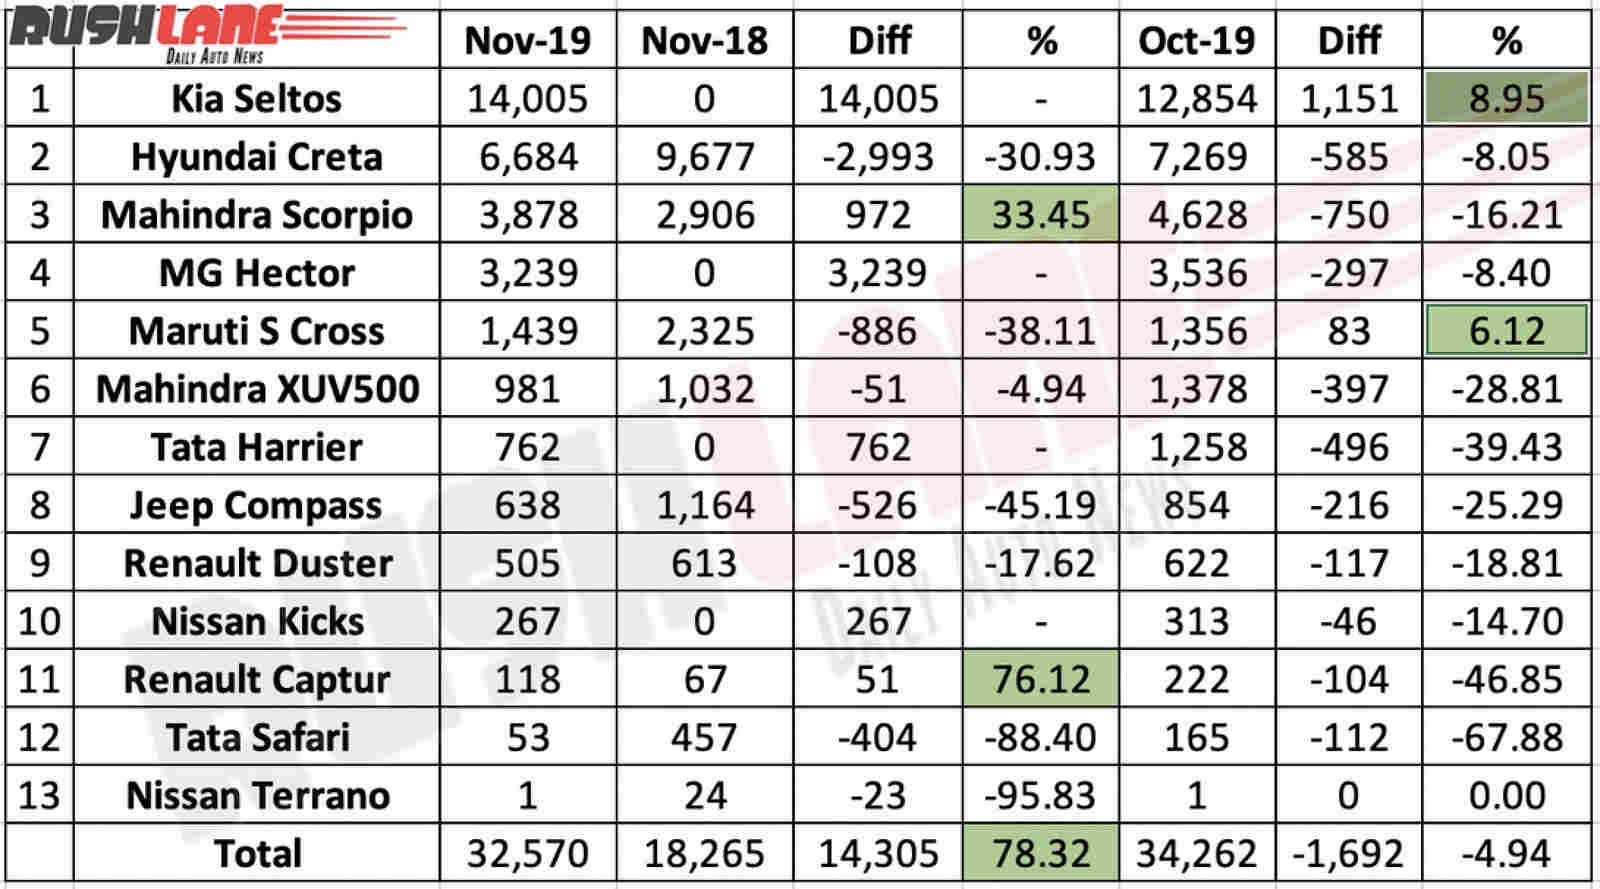 mid sized suv sales nov 2019